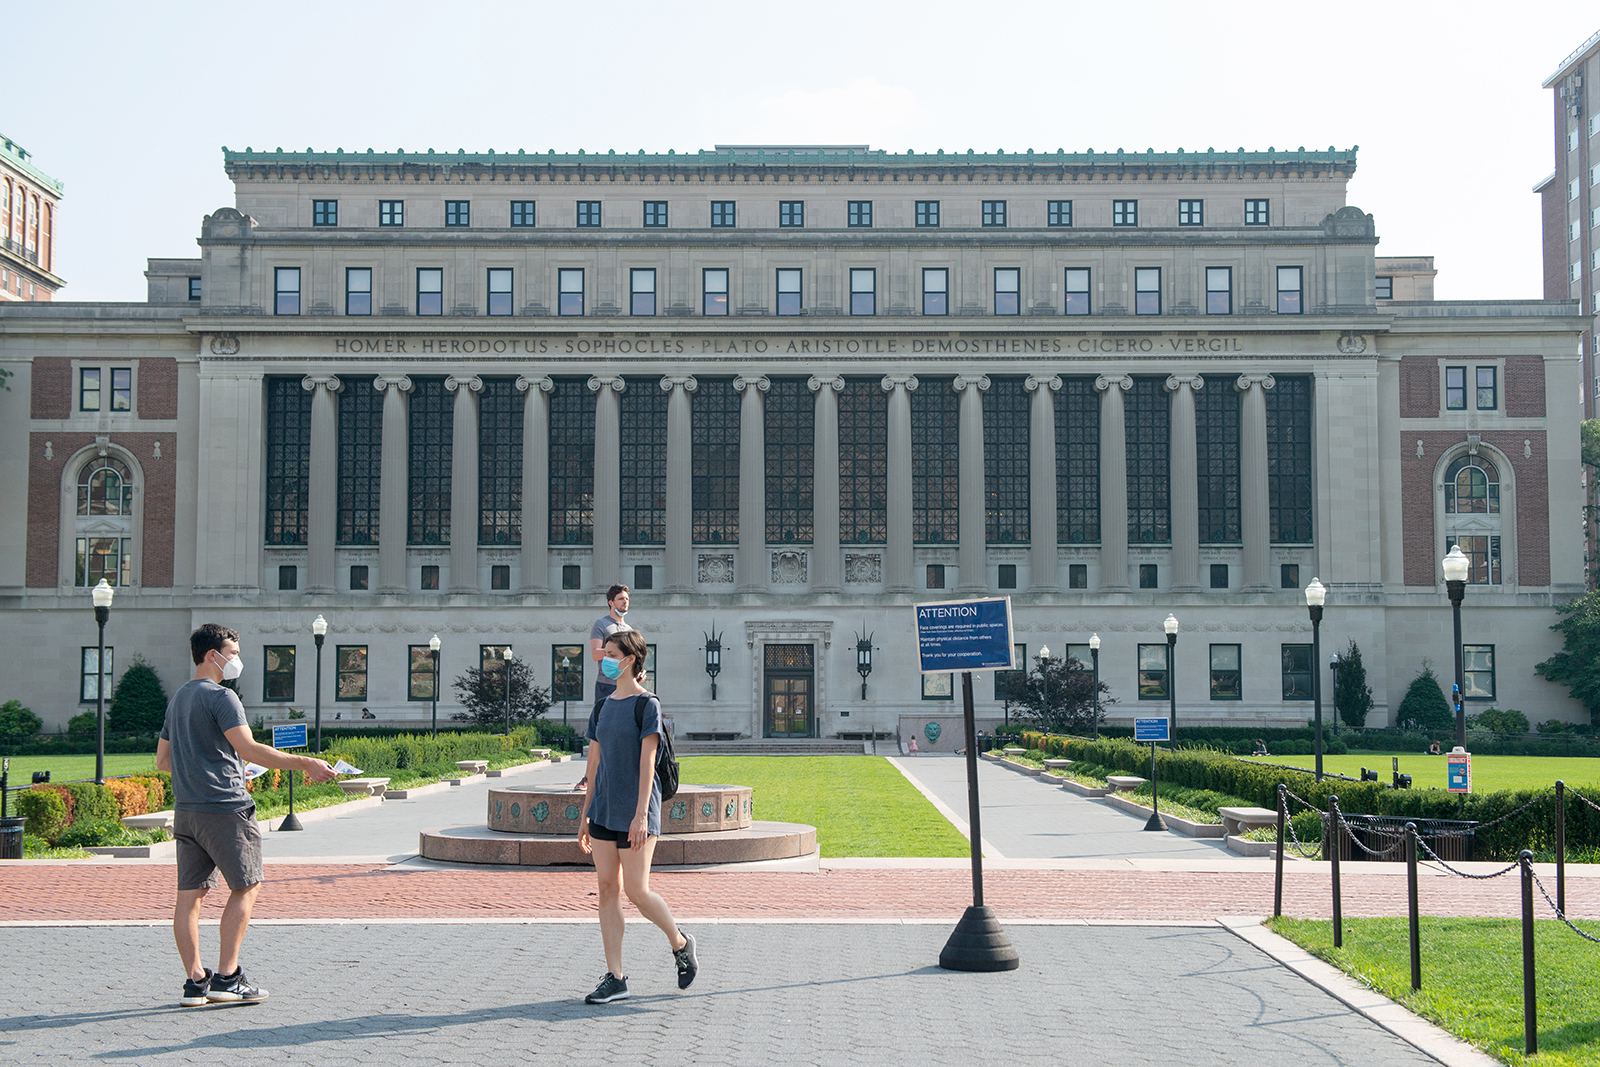 People wearing masks are seen on at Columbia University as the city continues Phase 4 of re-opening following restrictions imposed to slow the spread of coronavirus on August 6, in New York.